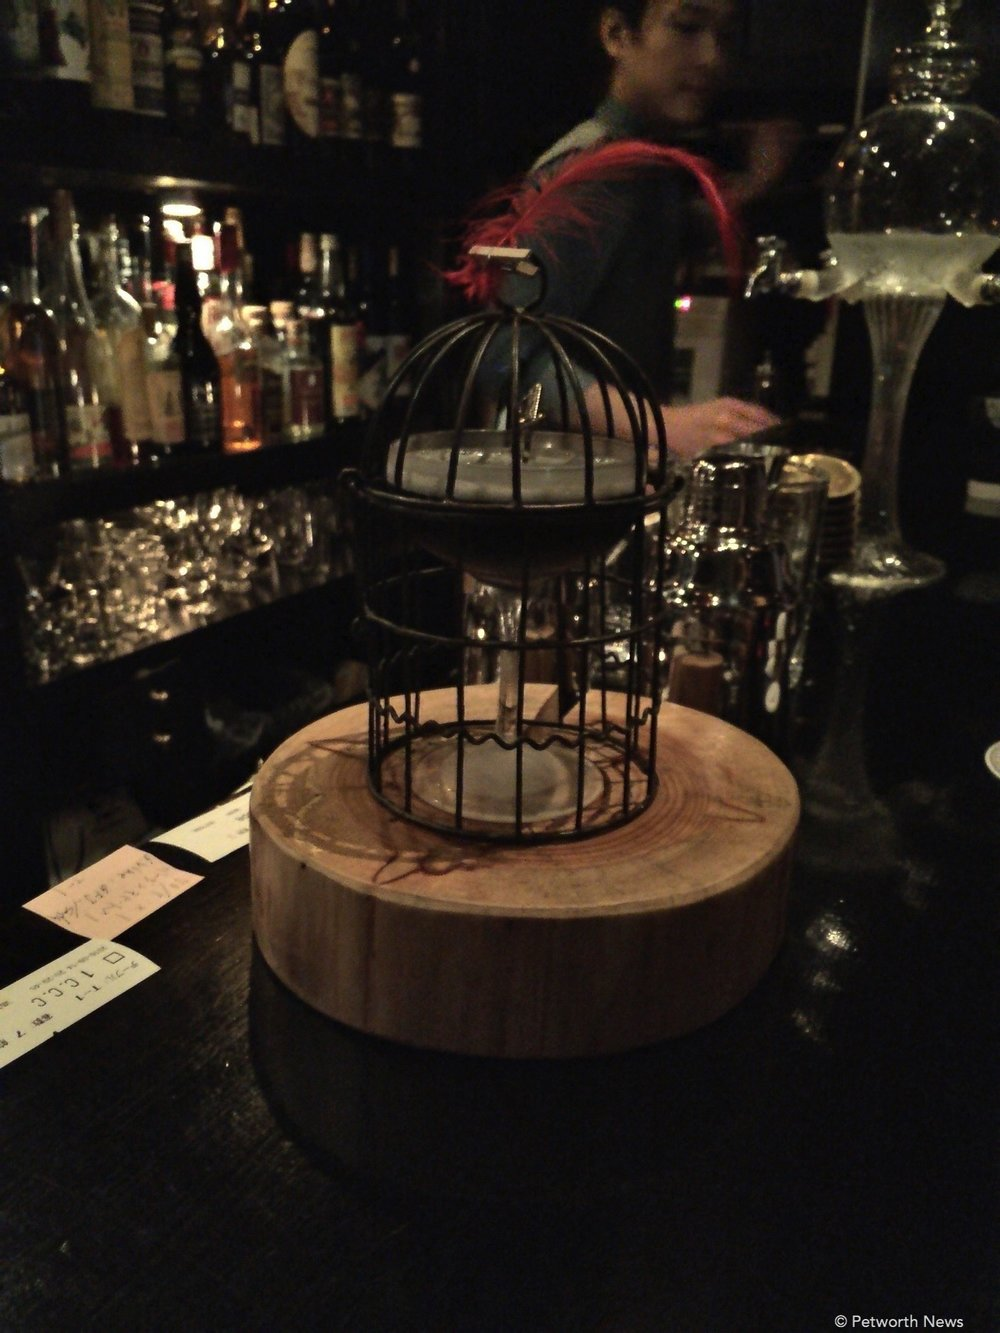 This drink features shaved charcoal and comes in a bird cage.